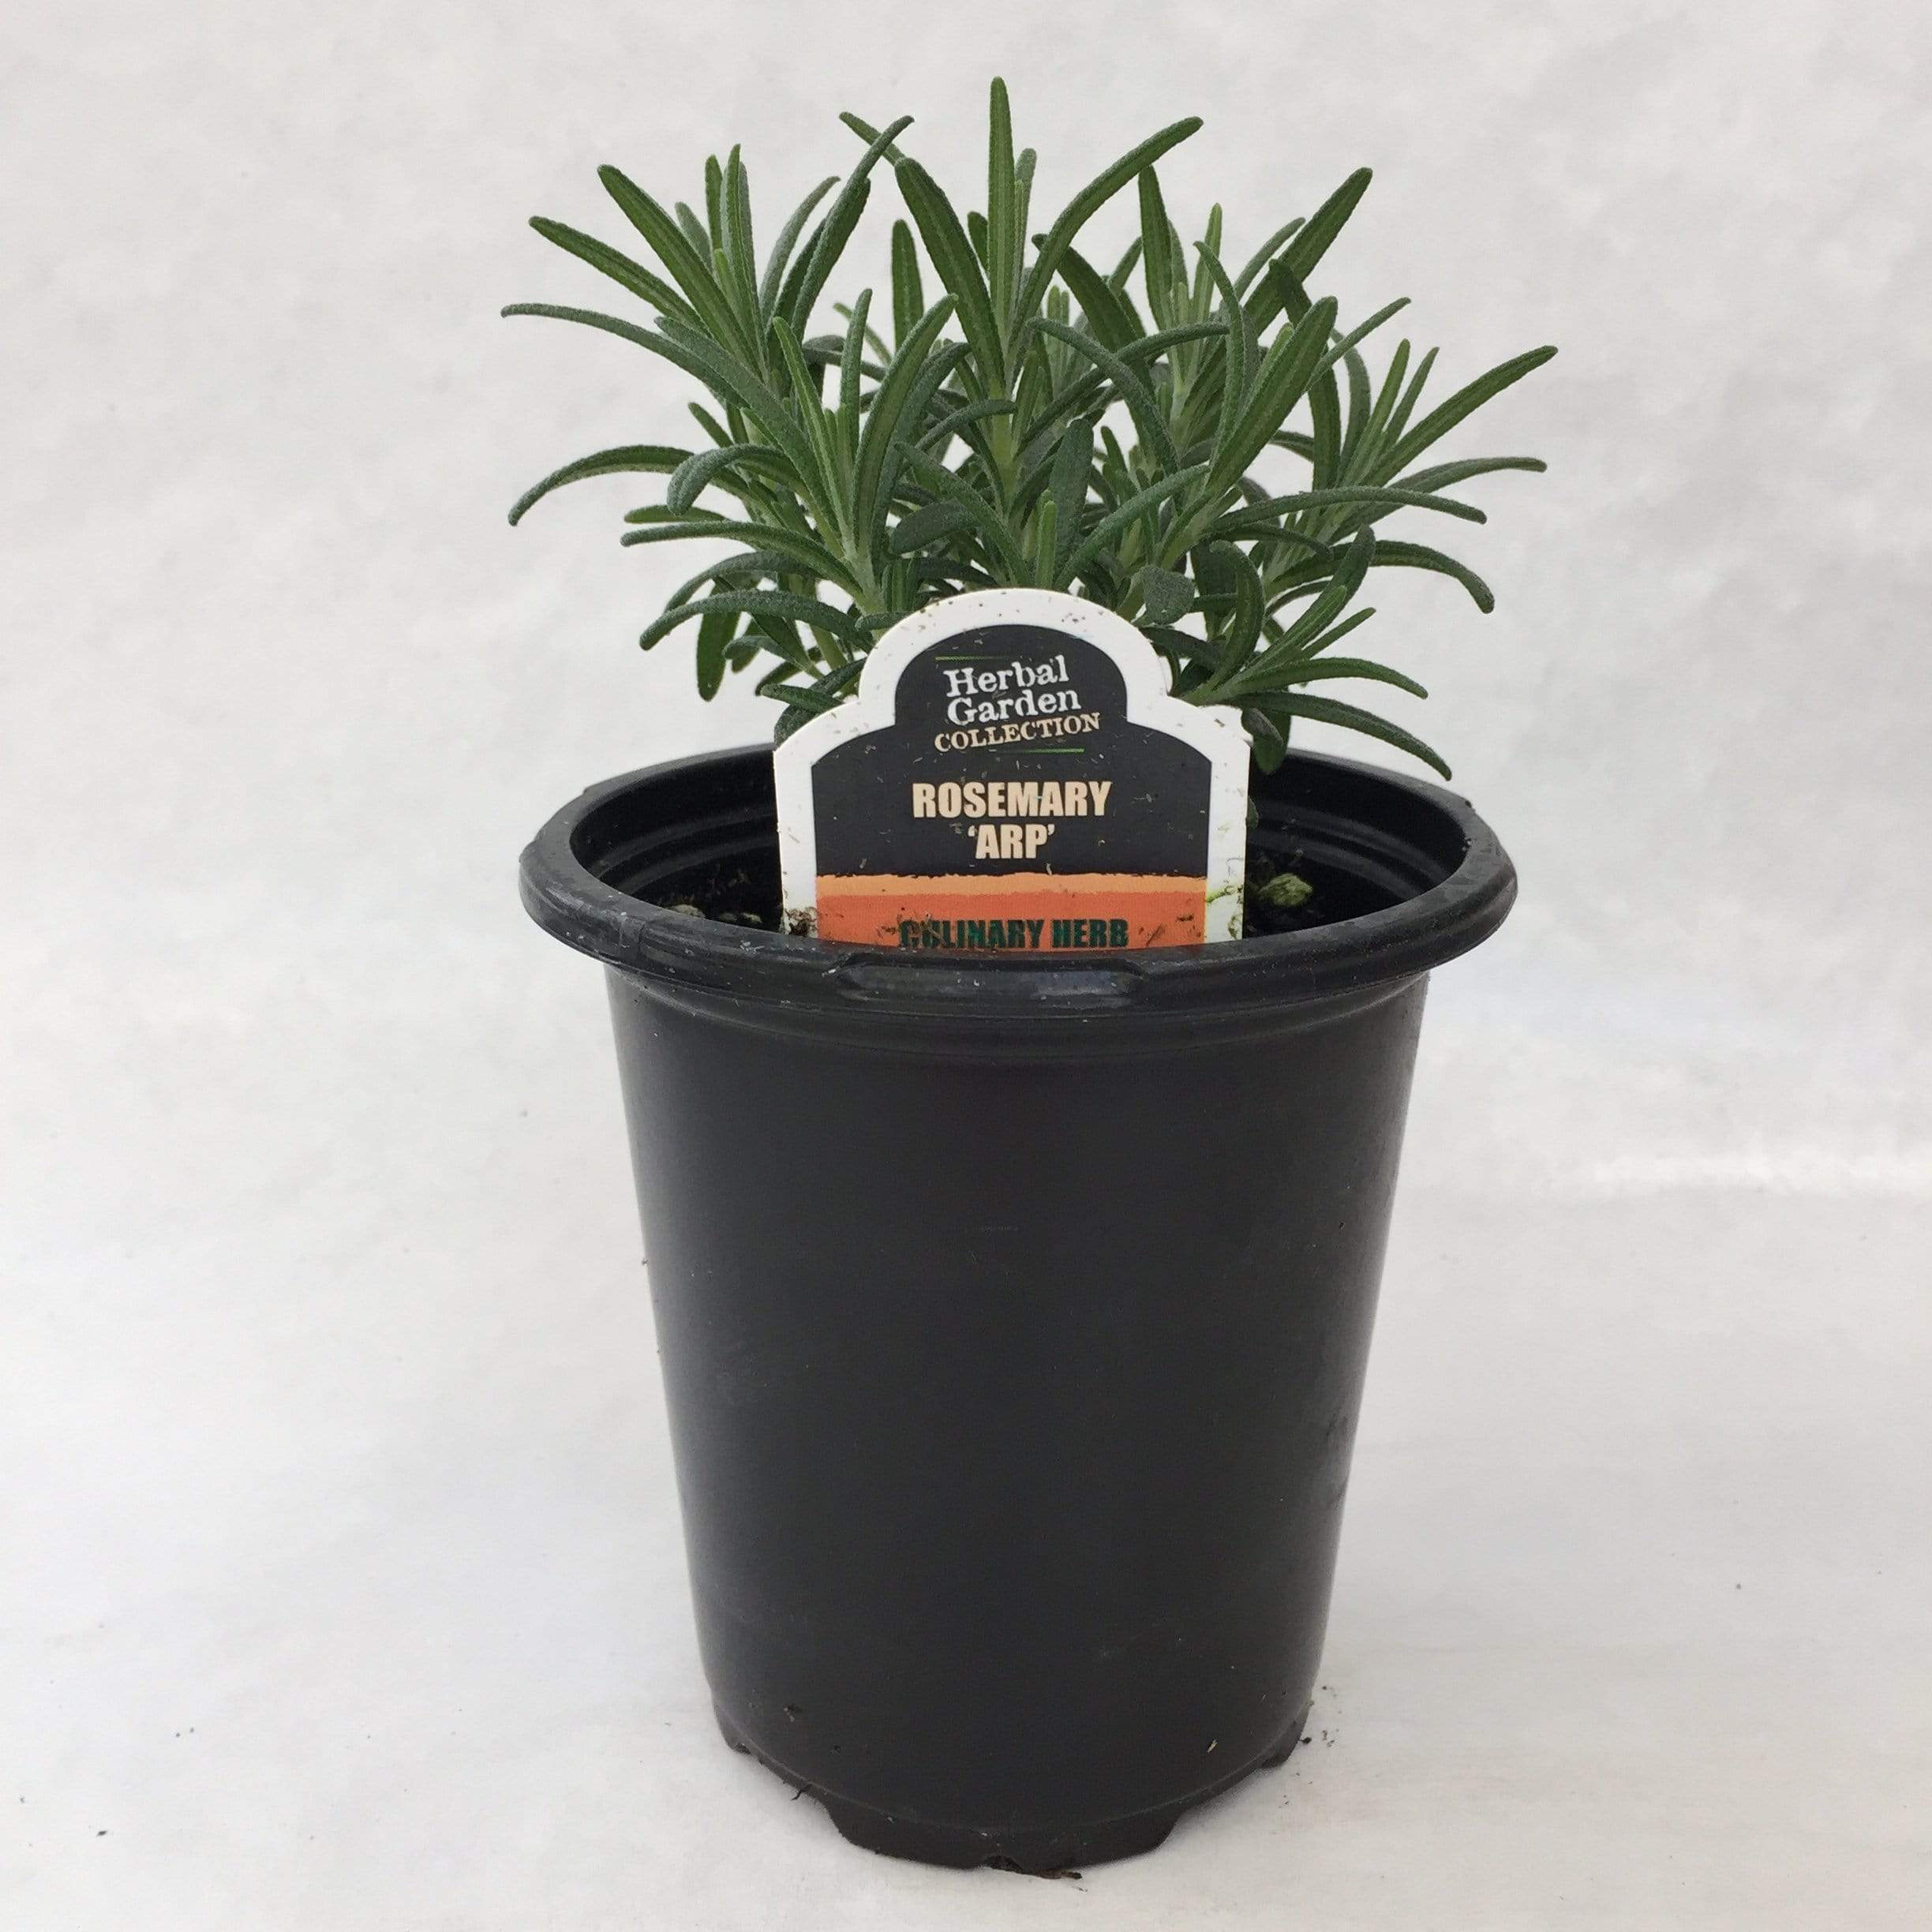 "The Plant Farm Herbs 4"" Plant Rosemary ARP Herb"